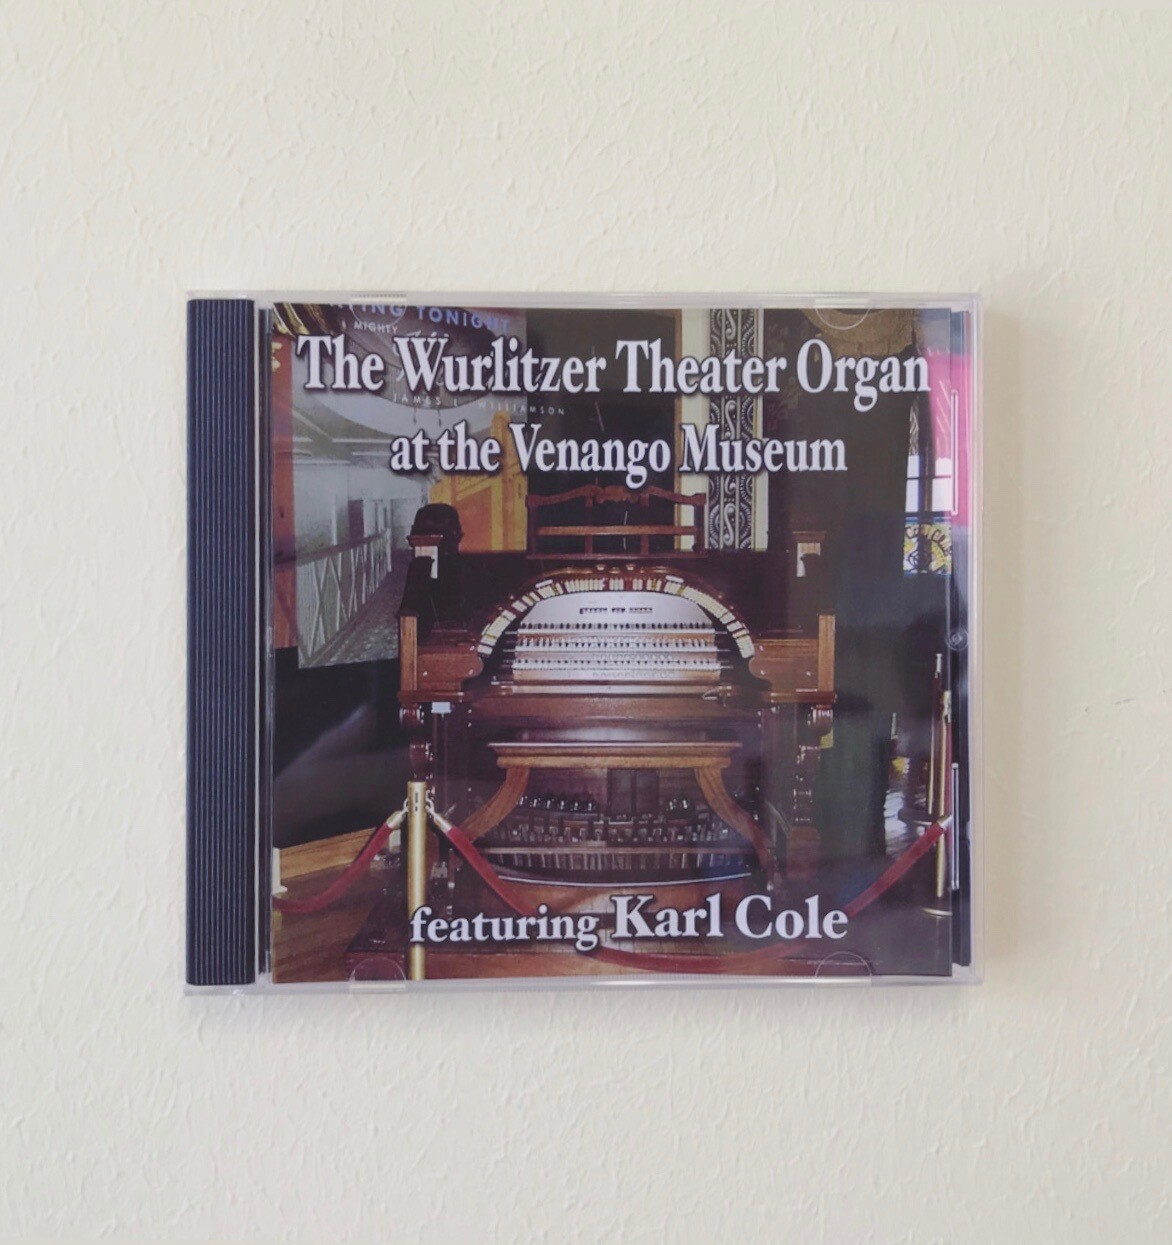 The Wurlitzer Organ at the Venango Museum CD